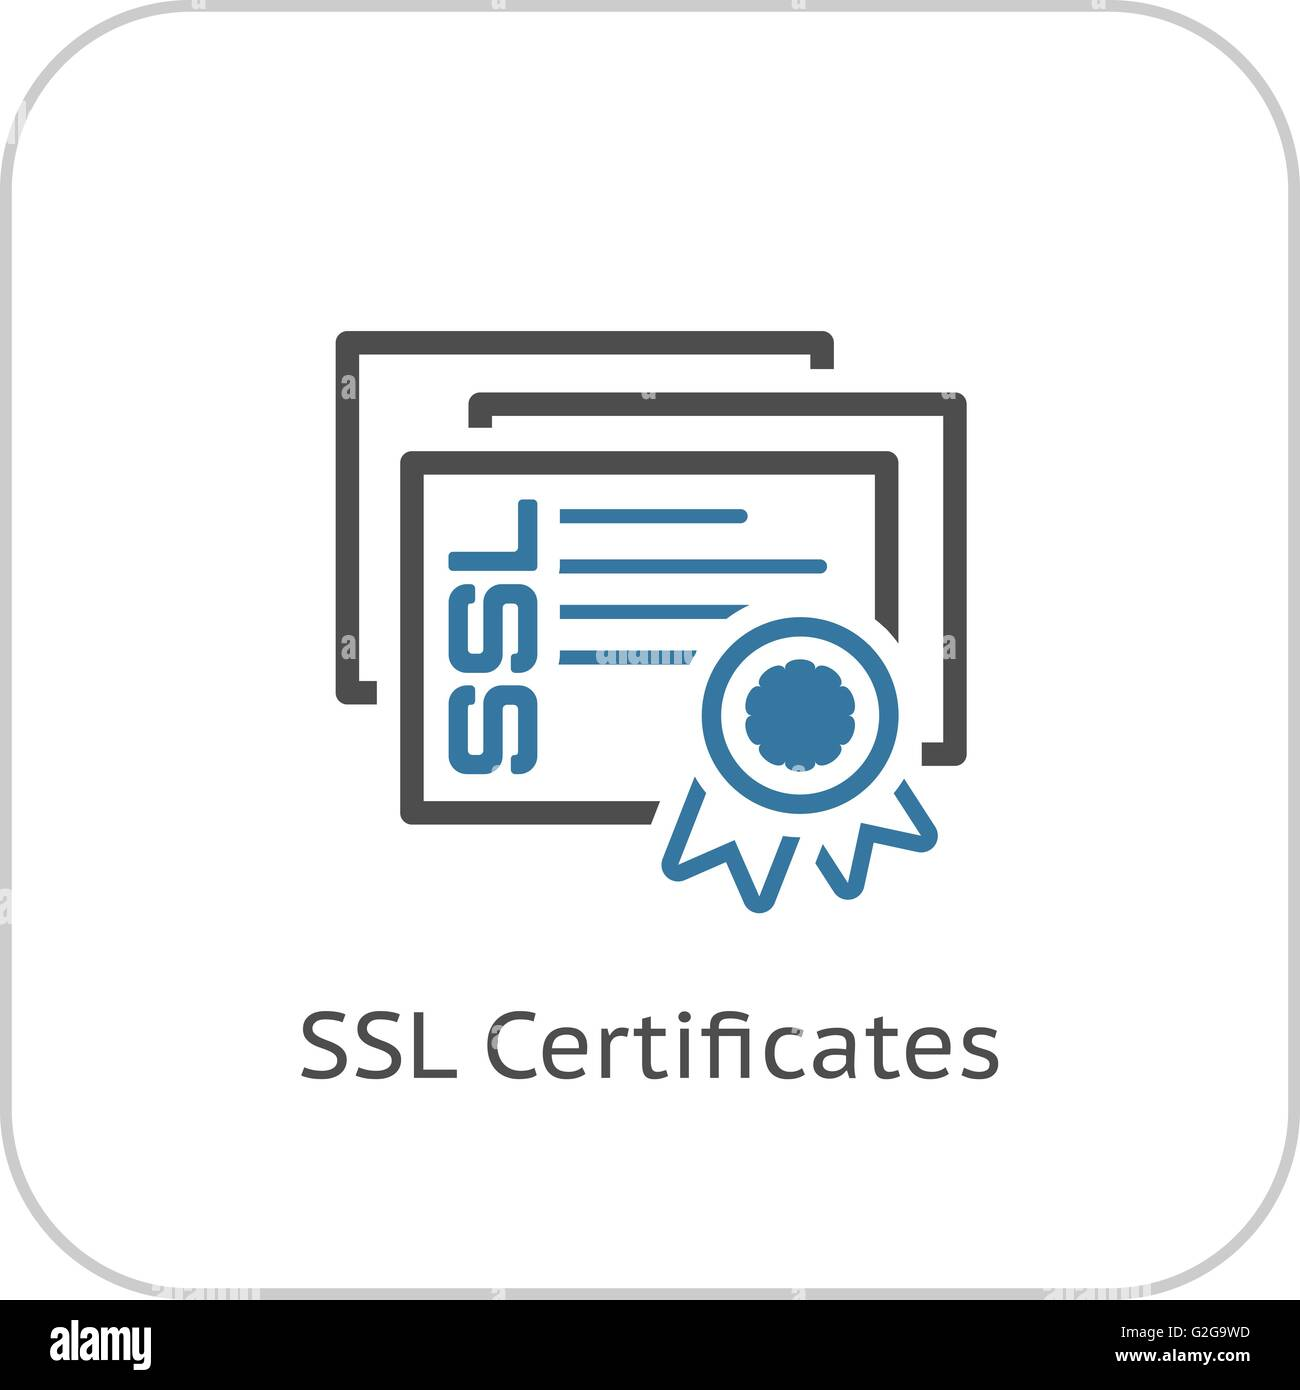 Ssl certificates icon flat design stock vector art illustration ssl certificates icon flat design 1betcityfo Images